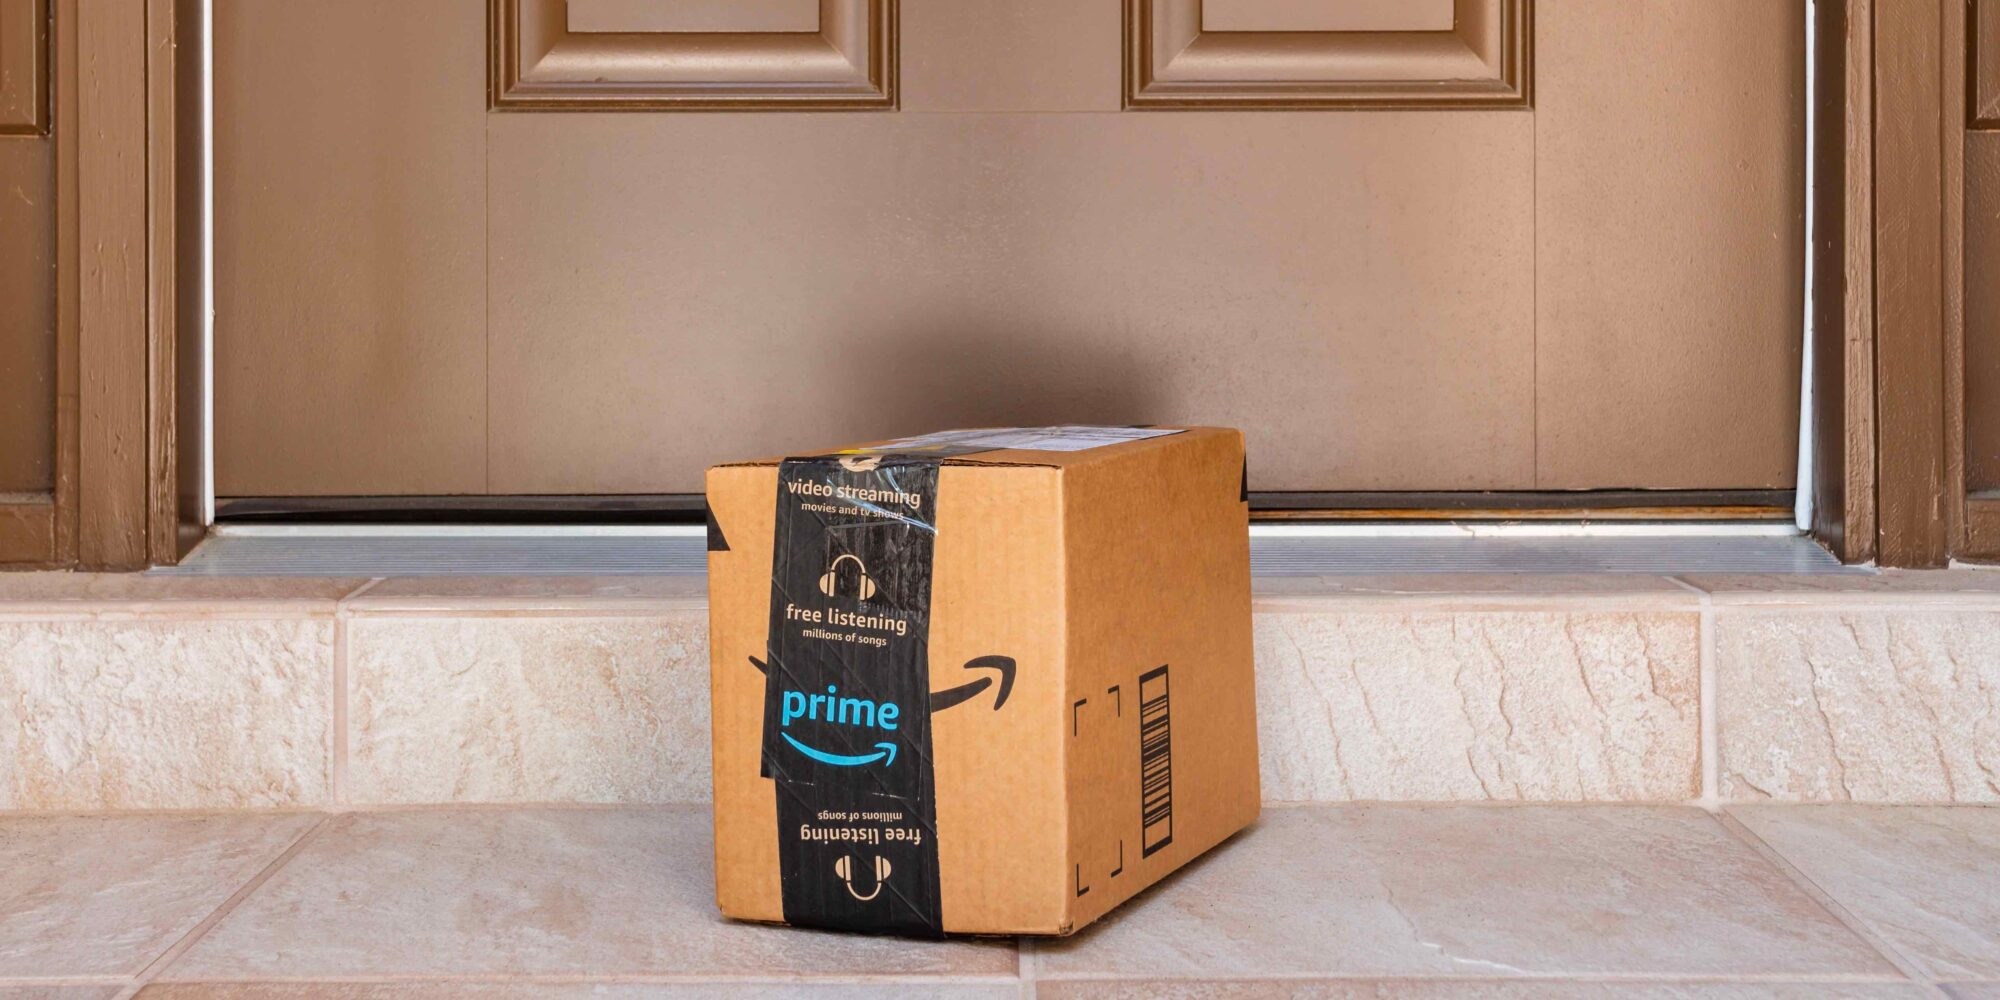 Envision Horizons' Laura Meyer Offers Tips To Brands For Before, During And After Amazon Prime Day